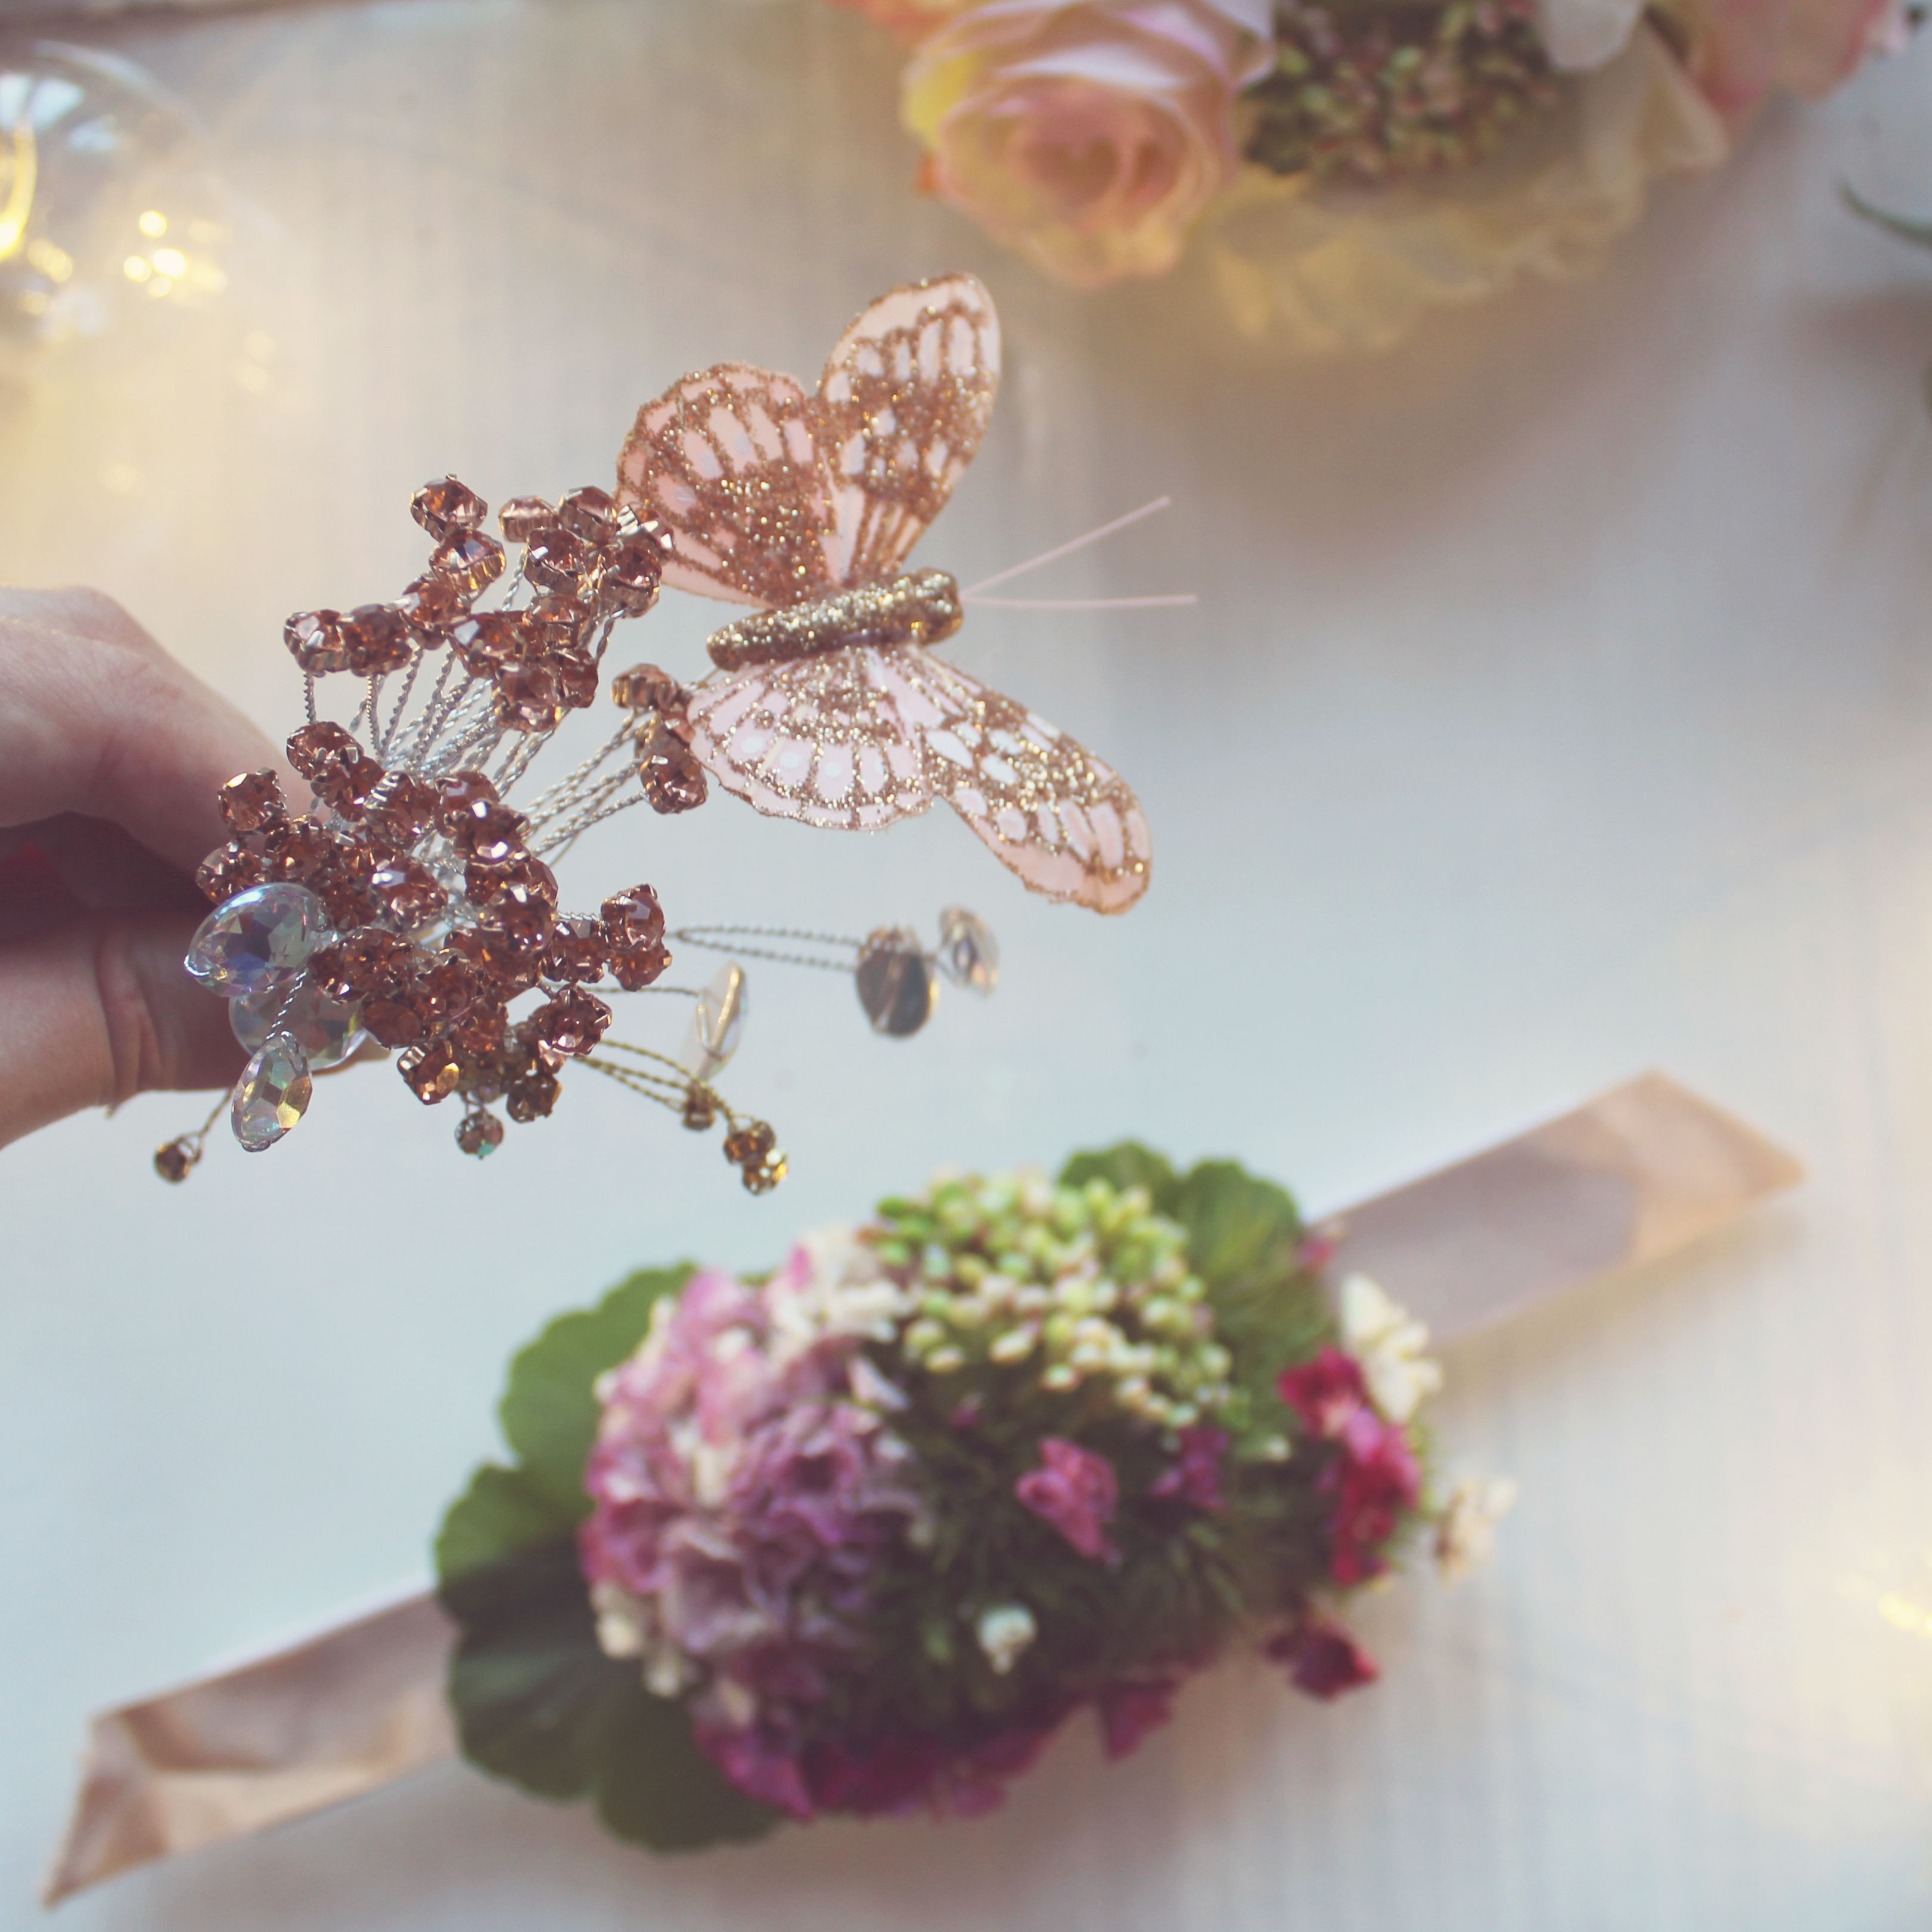 We're specialists in wearable flowers - our tools and accessories make it easy to create beautiful designs from flower crowns to flowers in hair, flower bracelets, floral jewellery, buttonholes, flower cuffs and more. Wear to garden parties, photo ops, all kinds of celebrations.  #flowercraft#flowercrown#flowercuff#floraljewellery#flowerjewellery#floralnecklace#floralaccessories#bohostylejewelry#diyjewelry#flowercomb#etsymakers#flowerbracelet#hairflowers#flowersinhair#flowersinmyhair#corsage